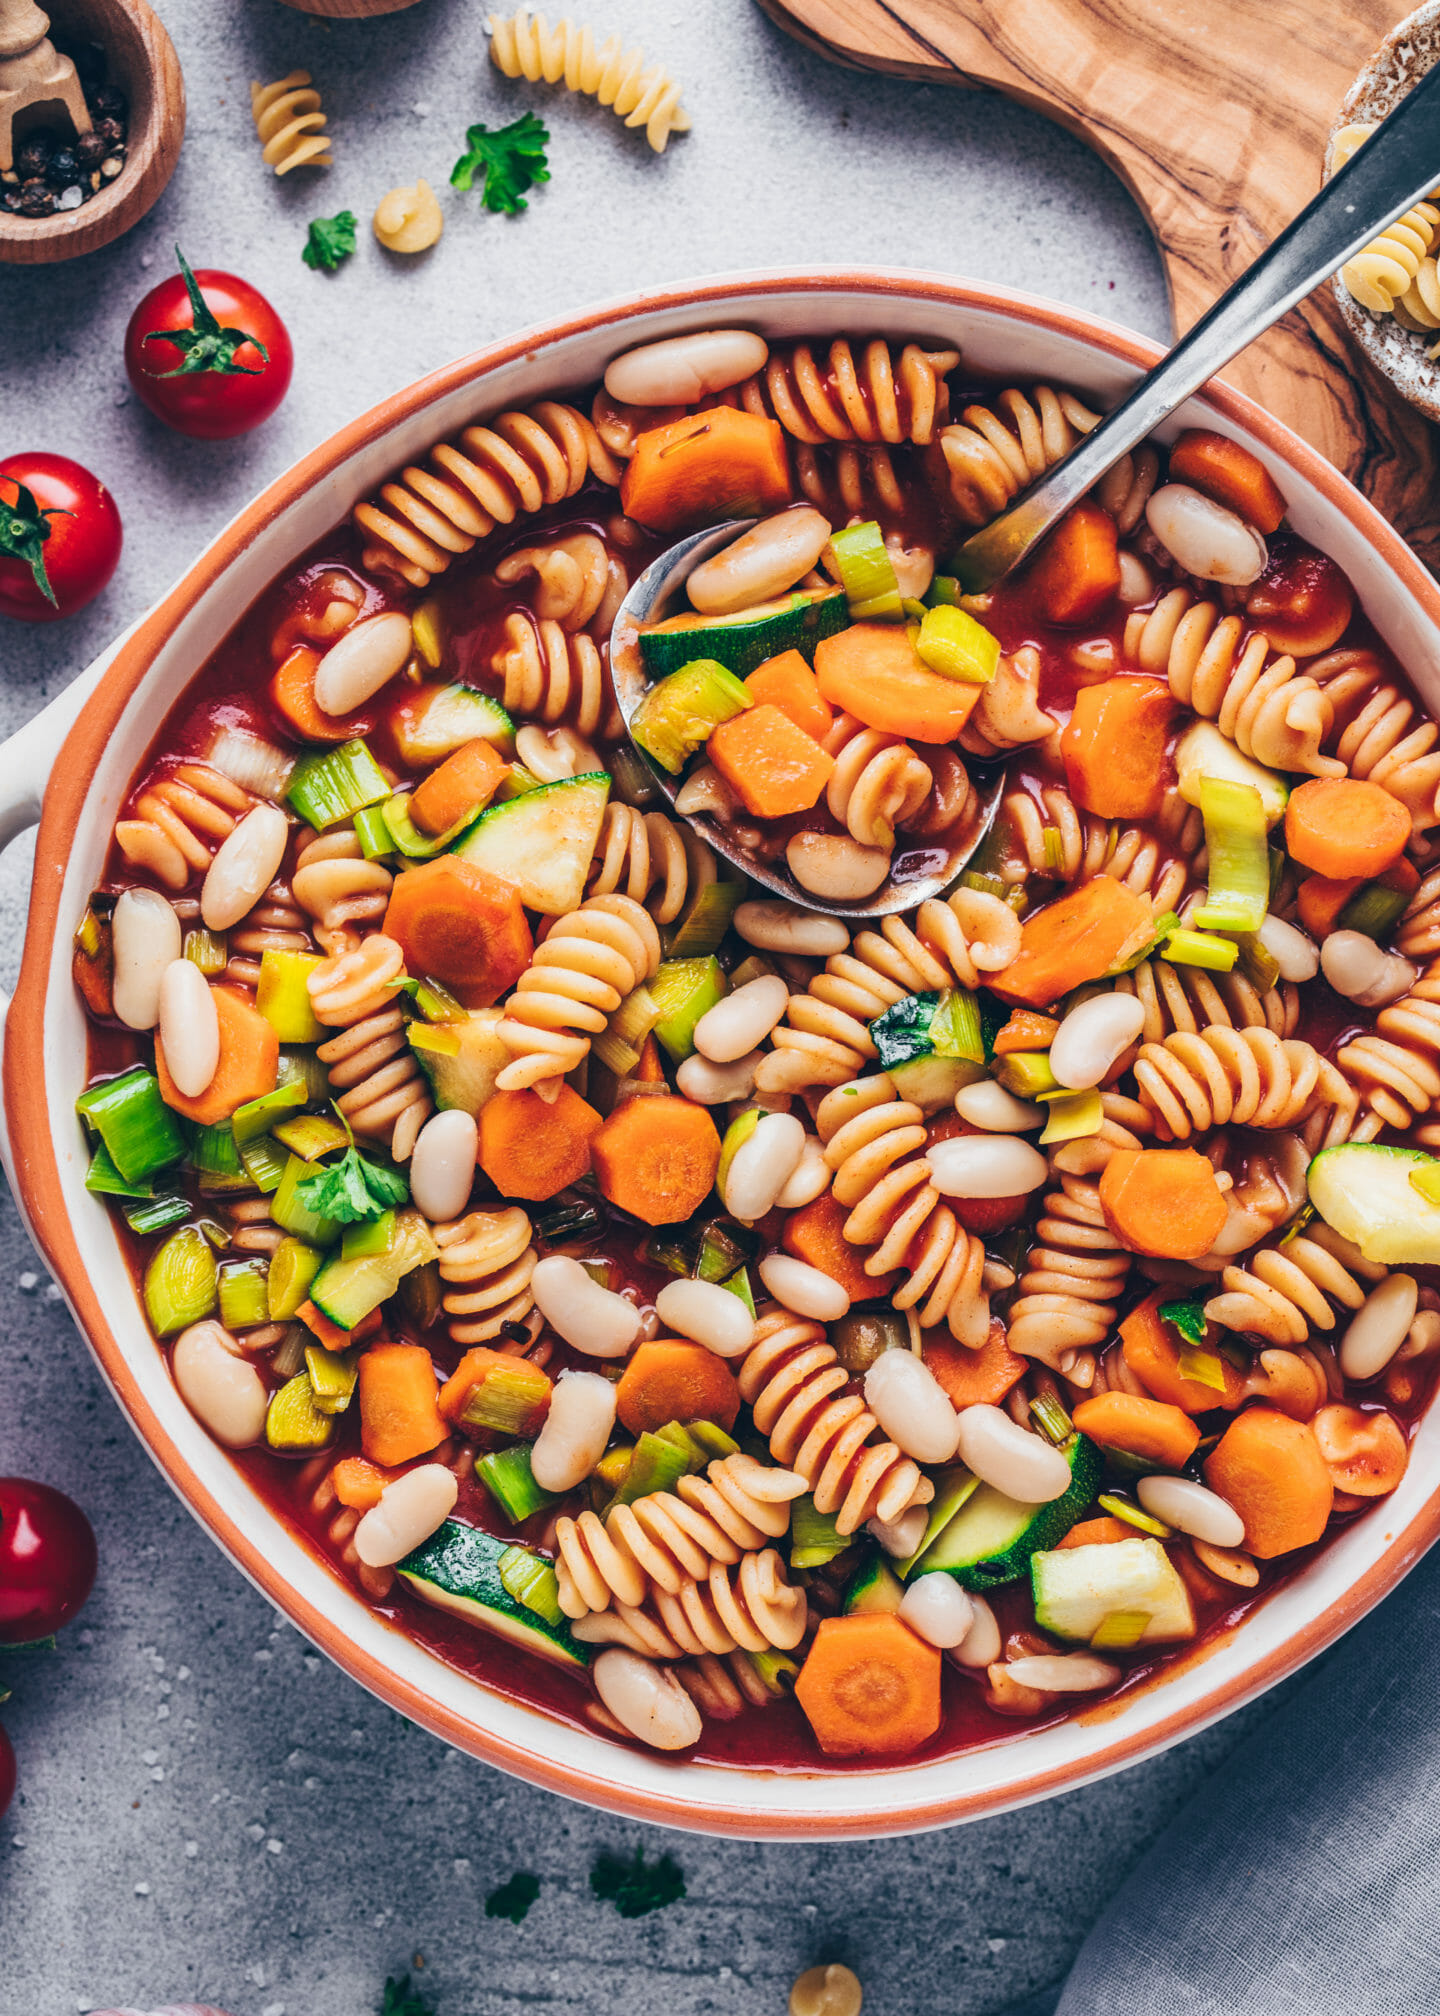 Minestrone Soup with vegetables, white beans and pasta